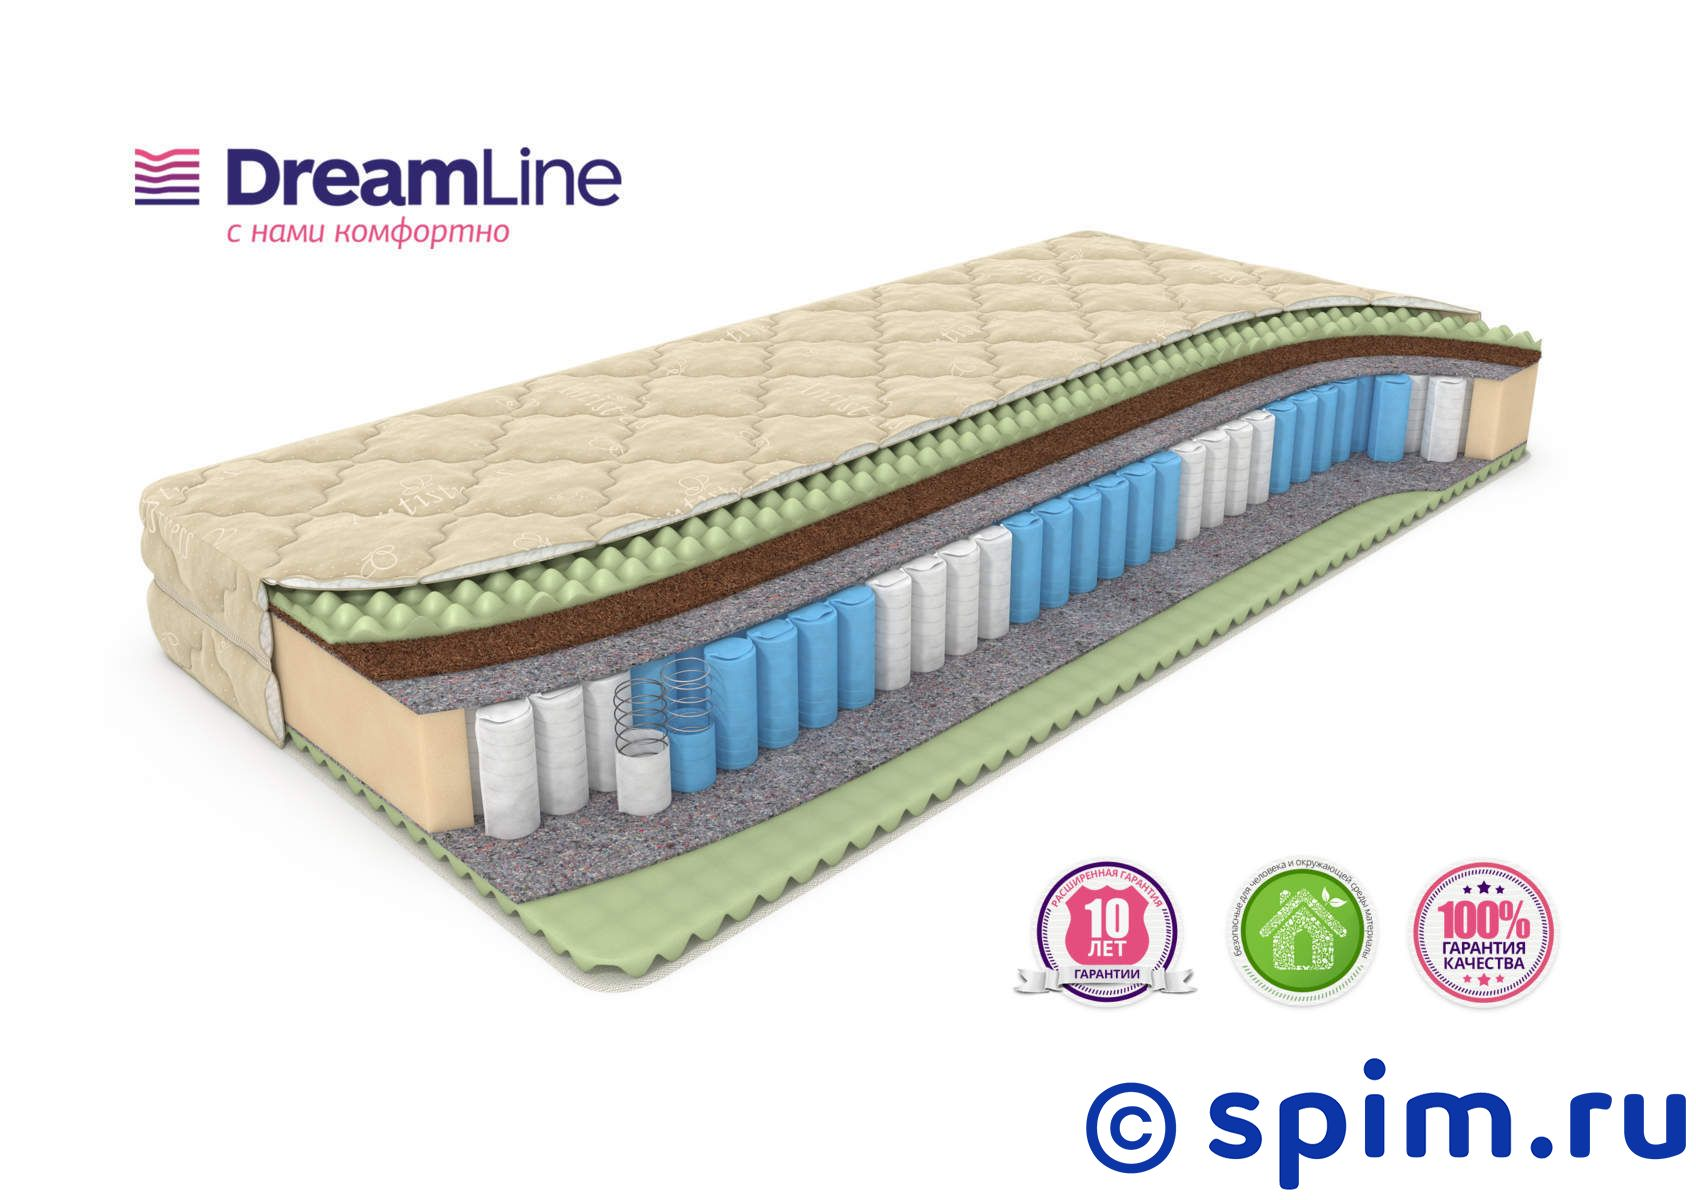 Матрас DreamLine Mix Foam Smart Zone 150х195 см матрас dreamline mix smart zone 120x195